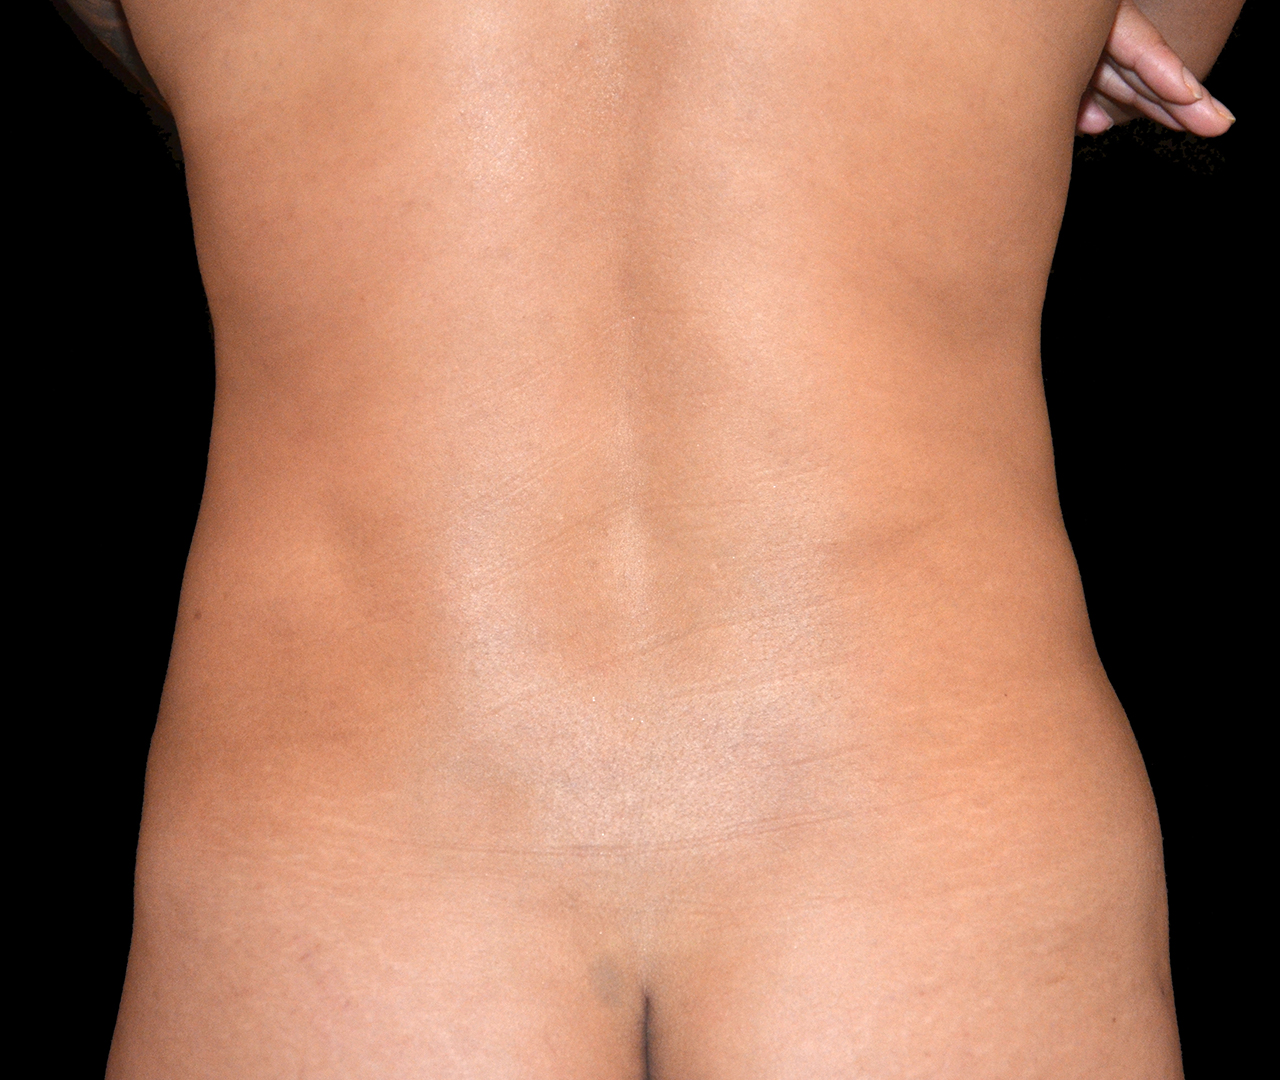 Liposuction Body 4